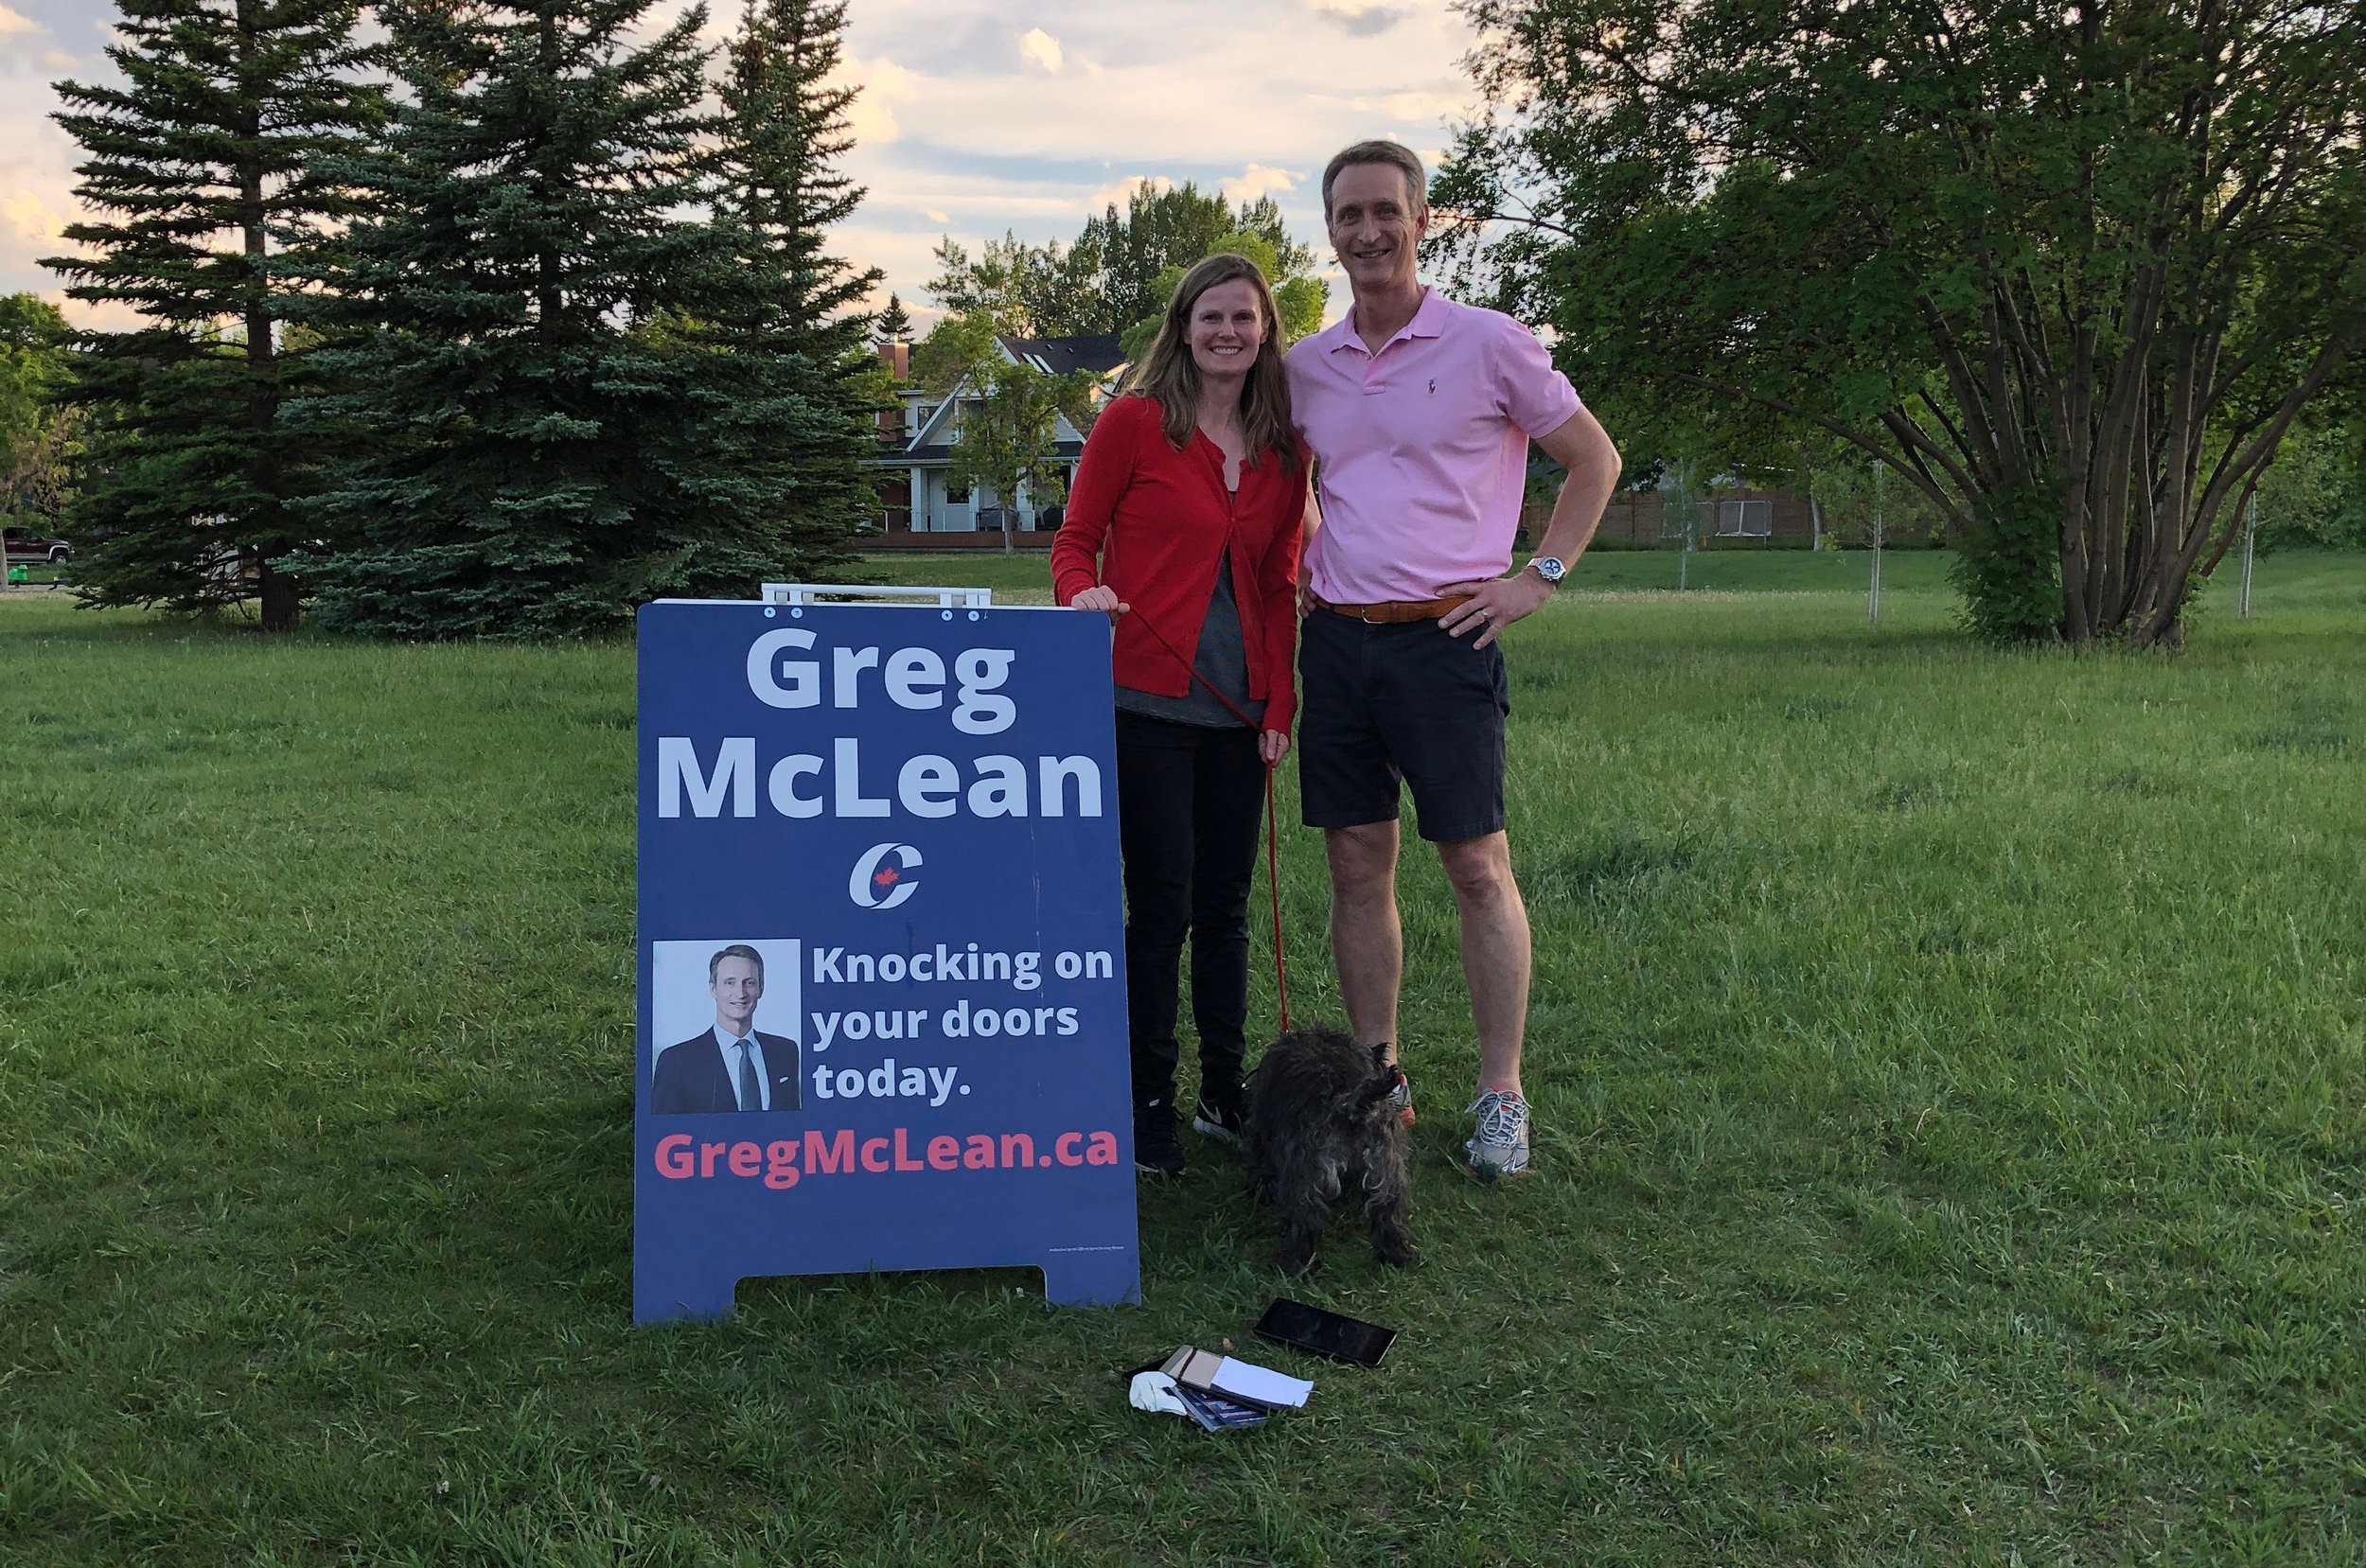 Everyone and their dog likes my neighbourhood signs. I'm getting a great reception at the doors, especially with the Liberal government's attacks on the oil and gas industry this week - passing bills C-69 and C-48.